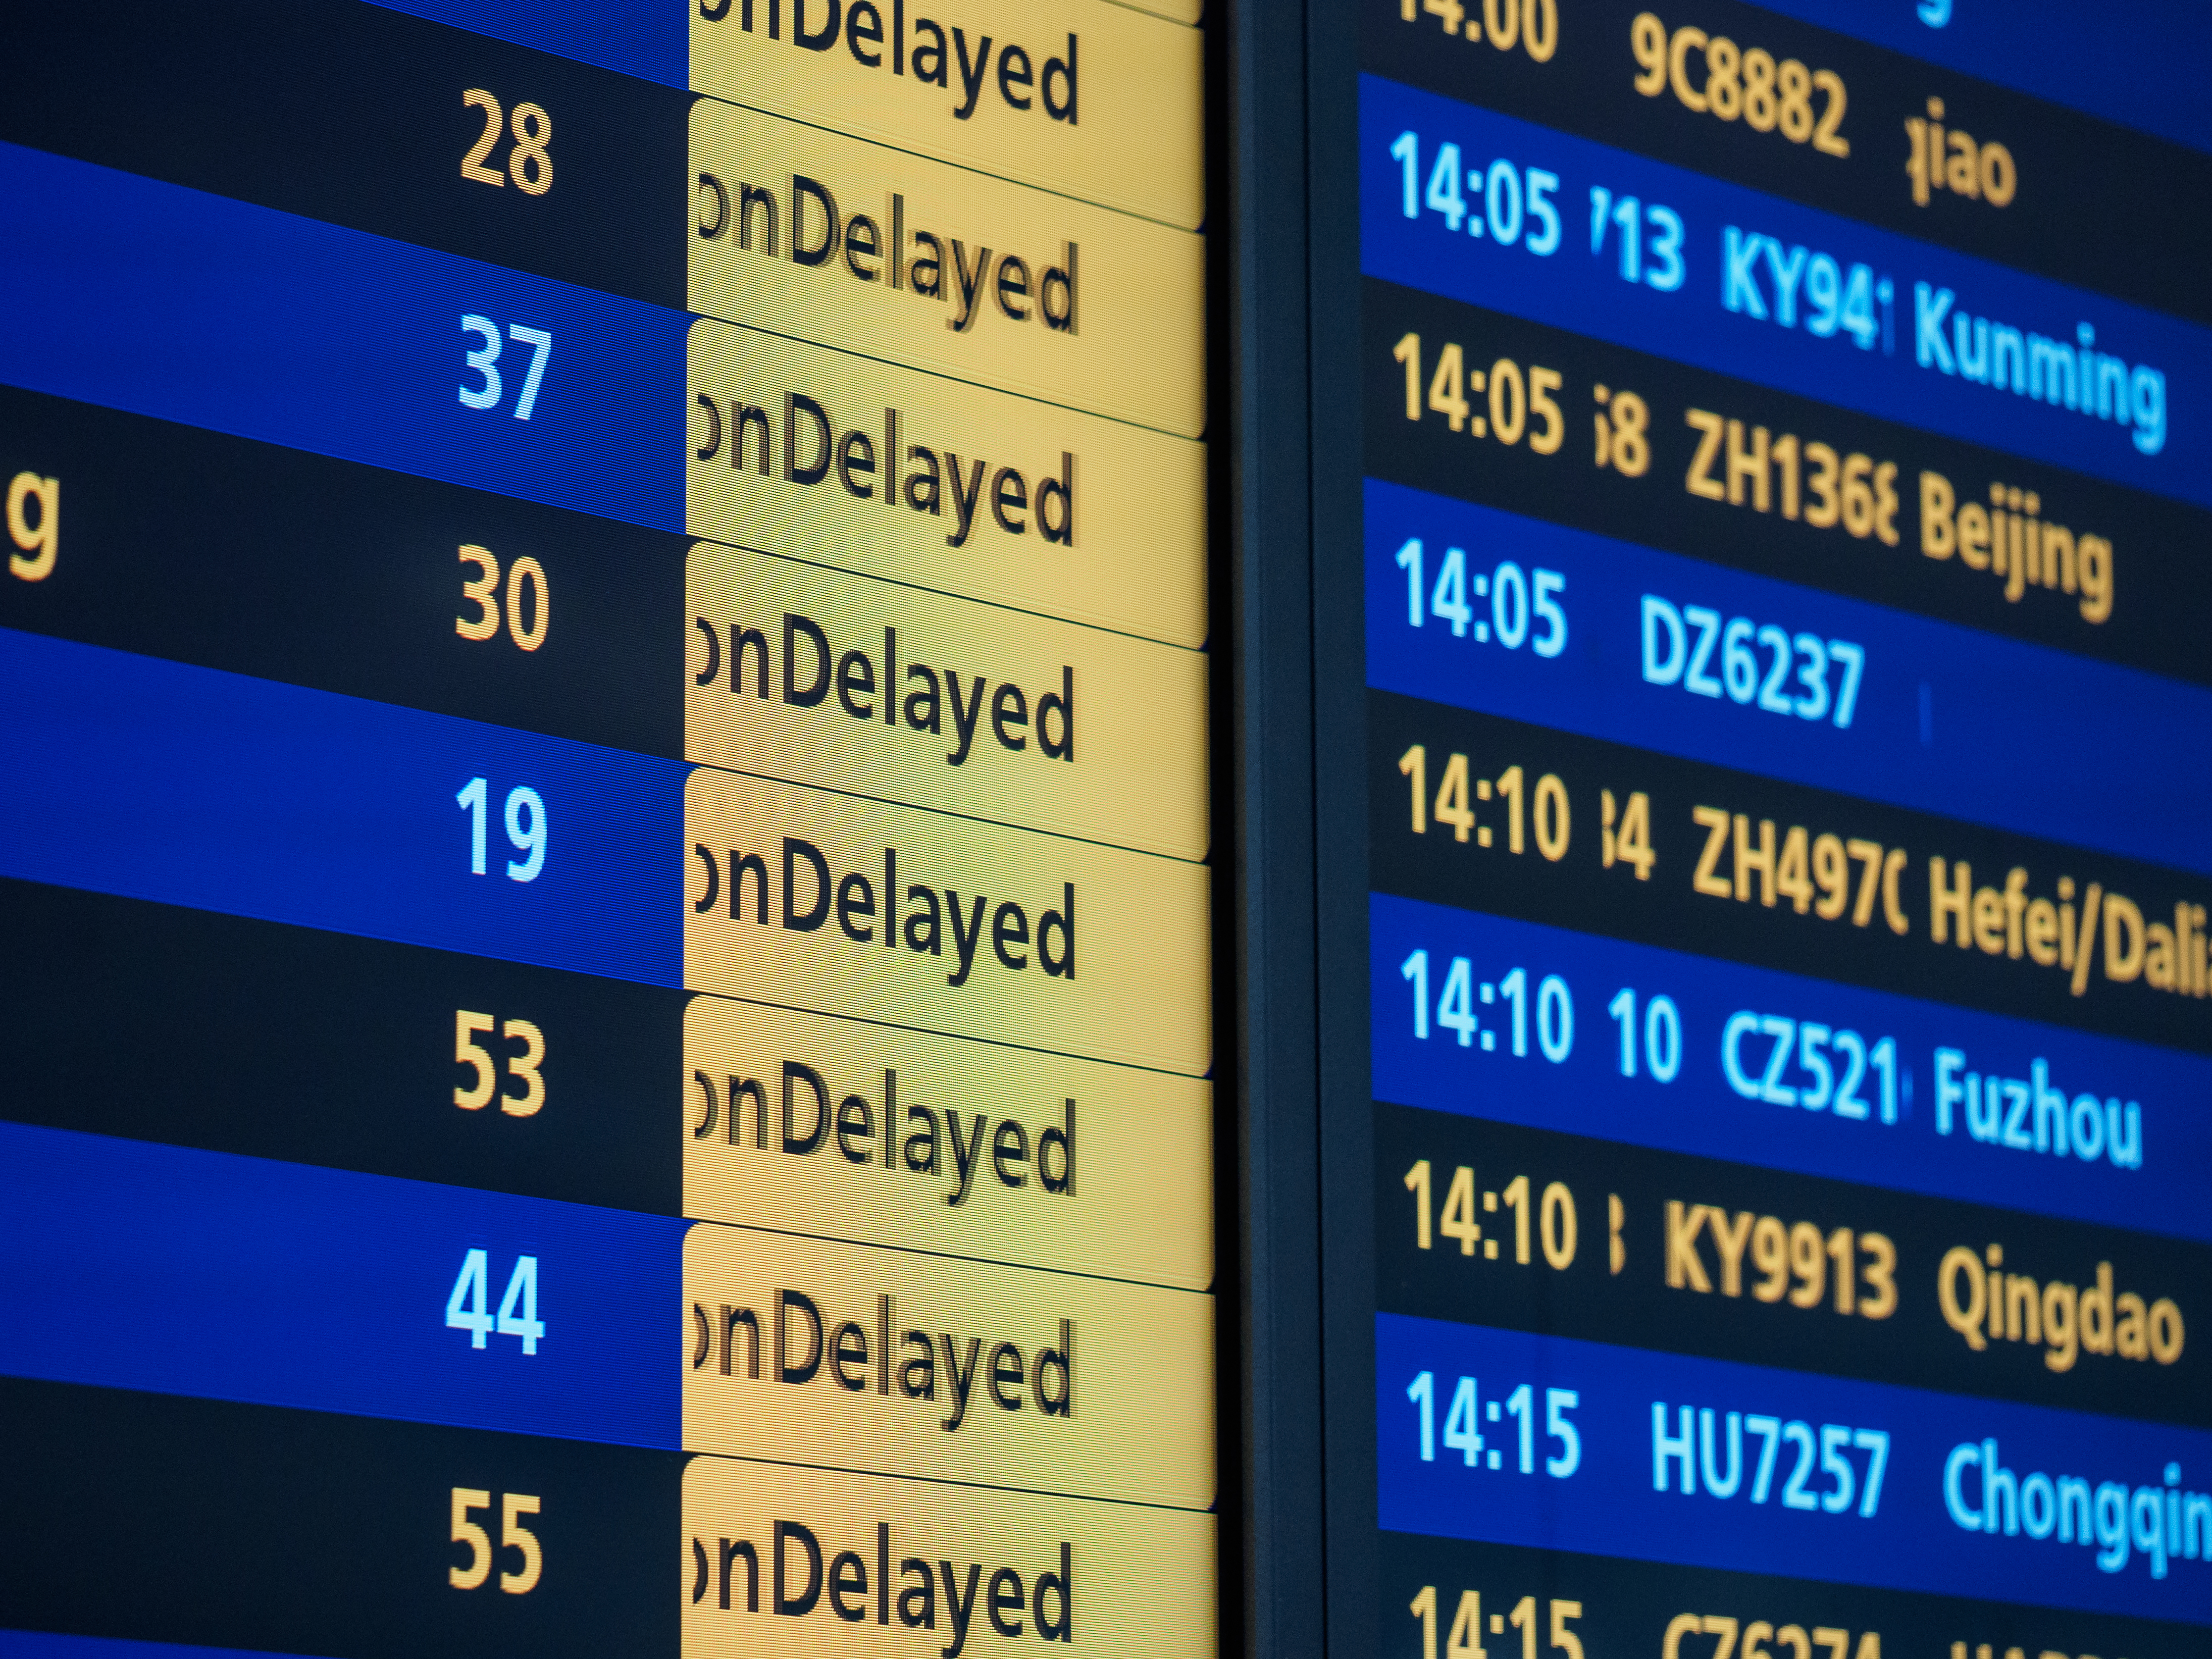 delayed train schedule